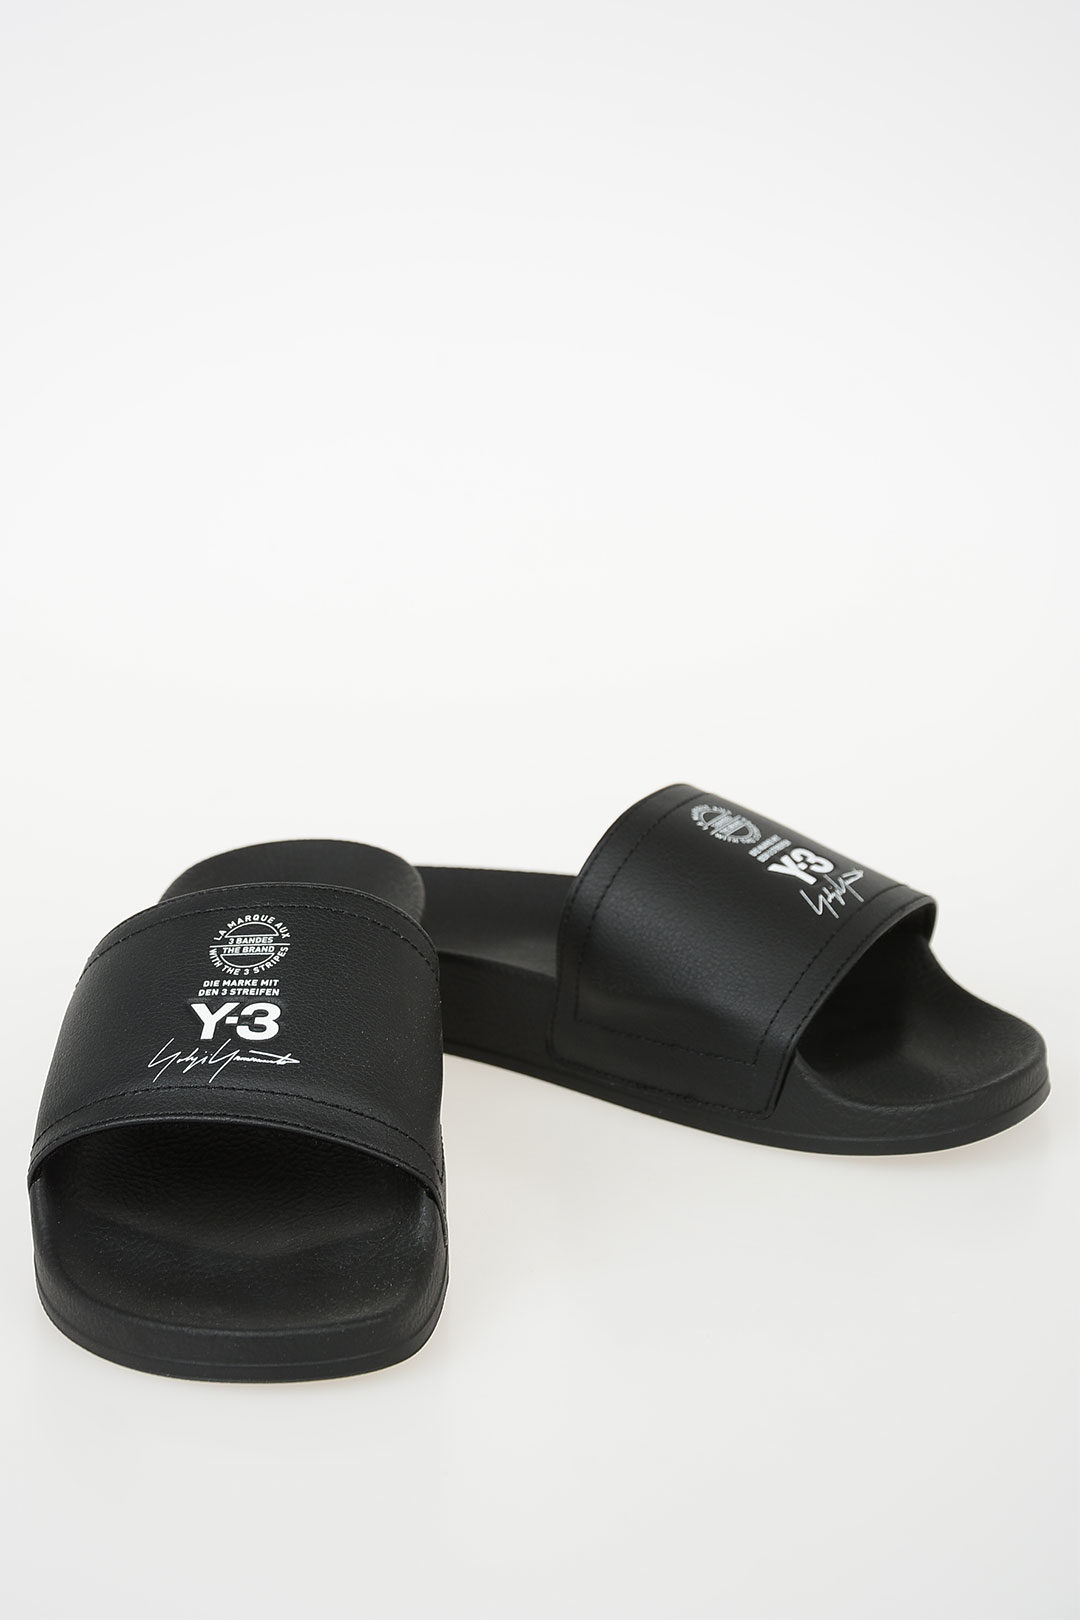 huge selection of 92a2a 81190 Y3 Slippers ADILETTE